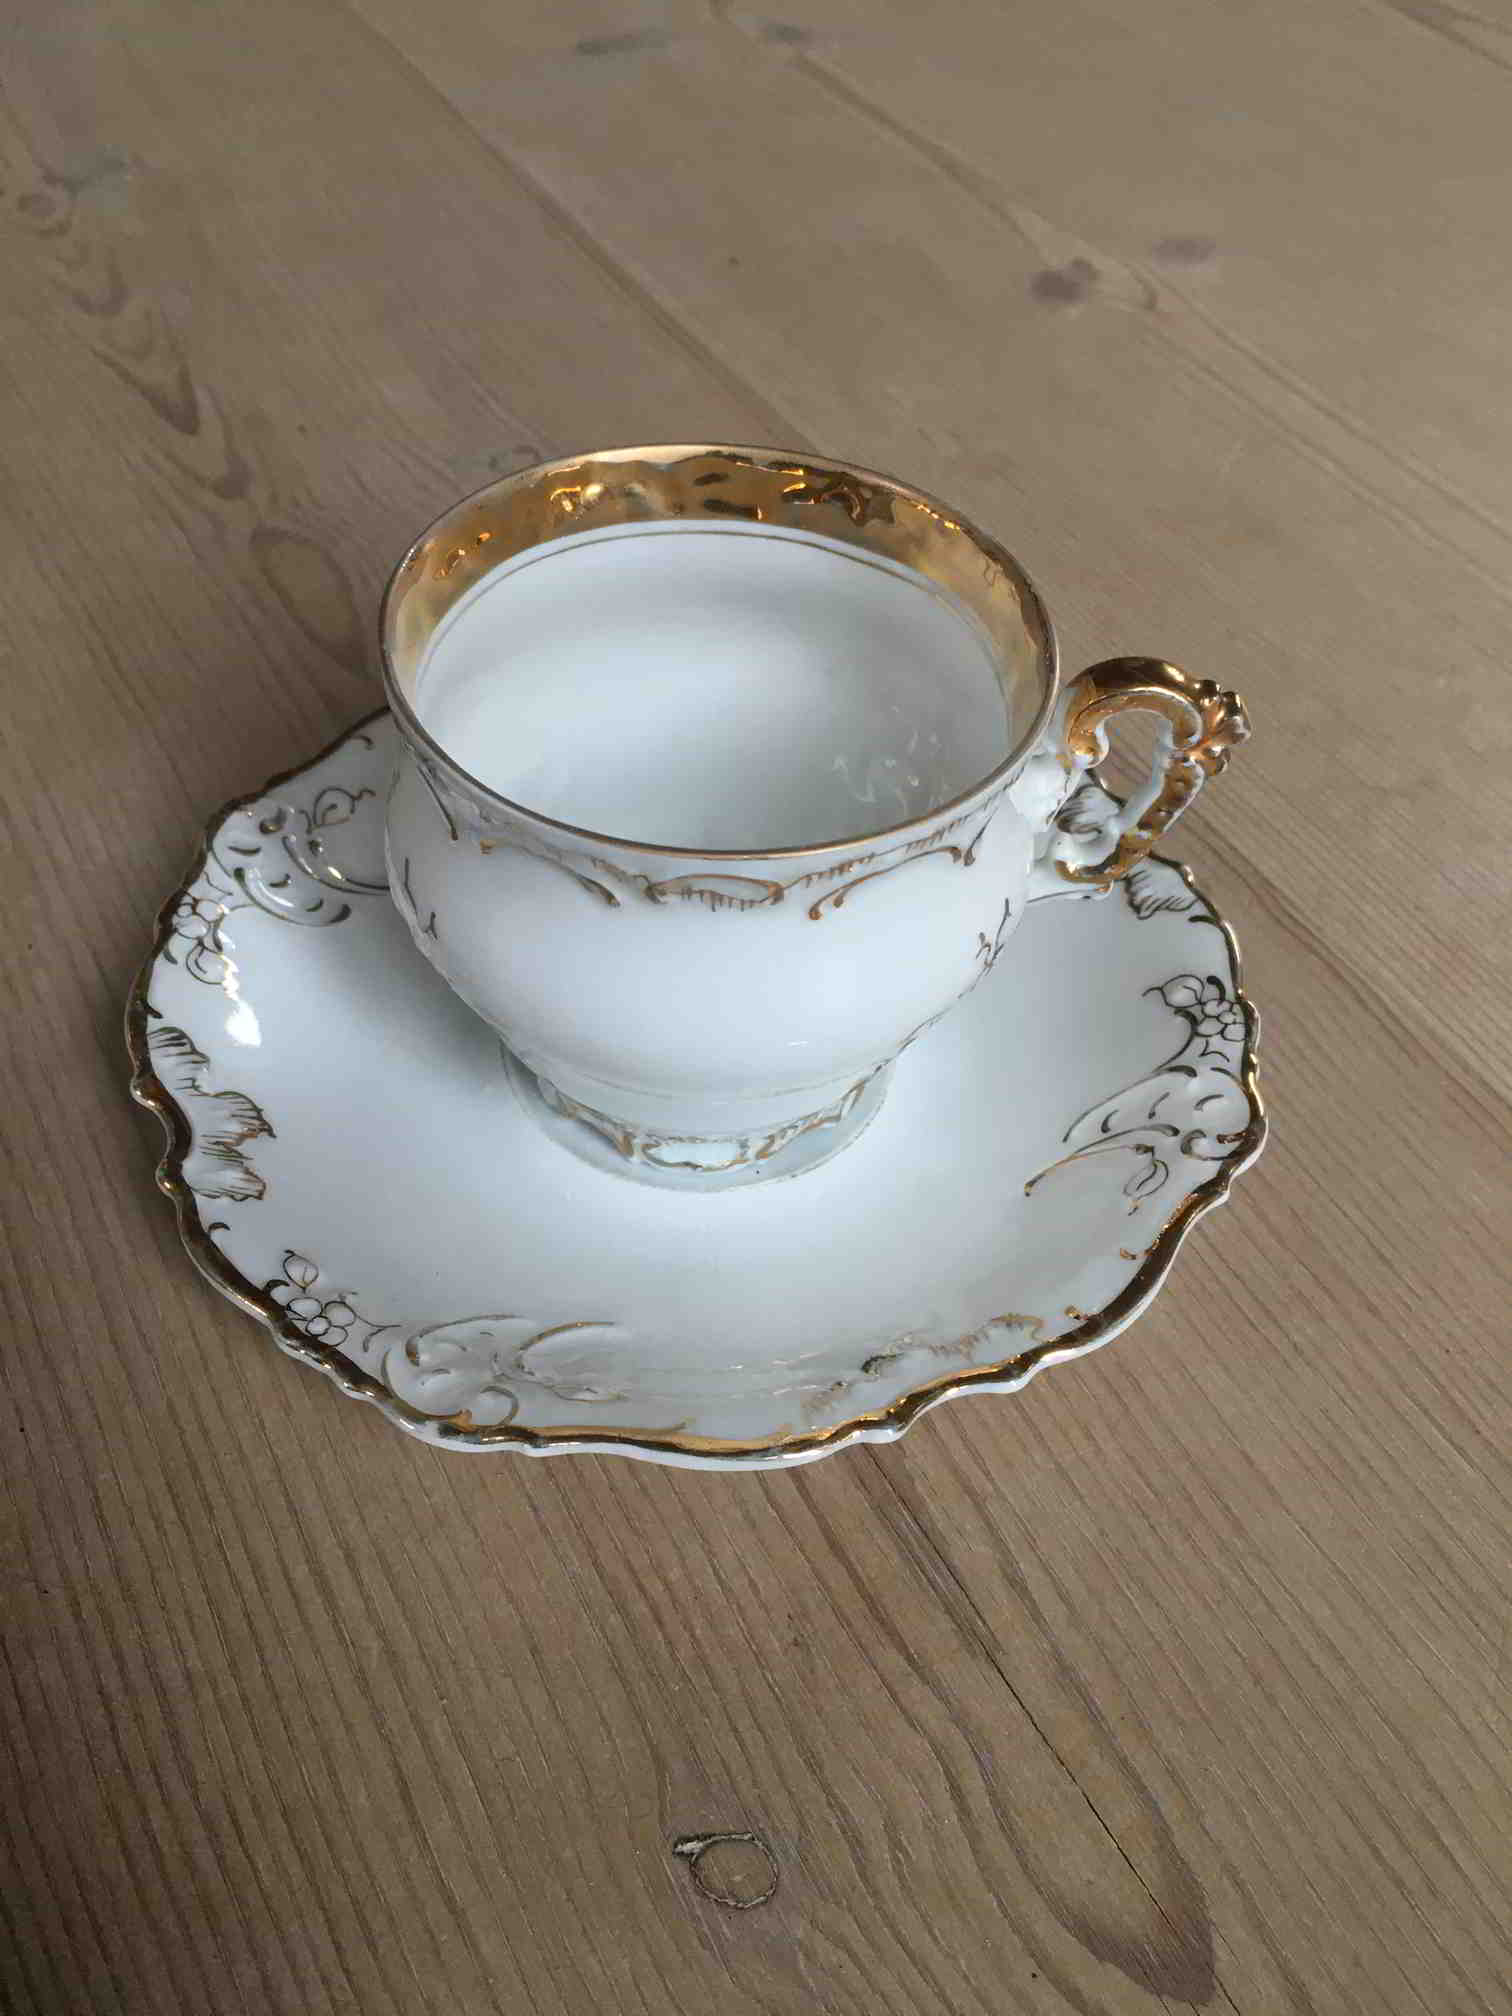 Elysee cider cup and saucer